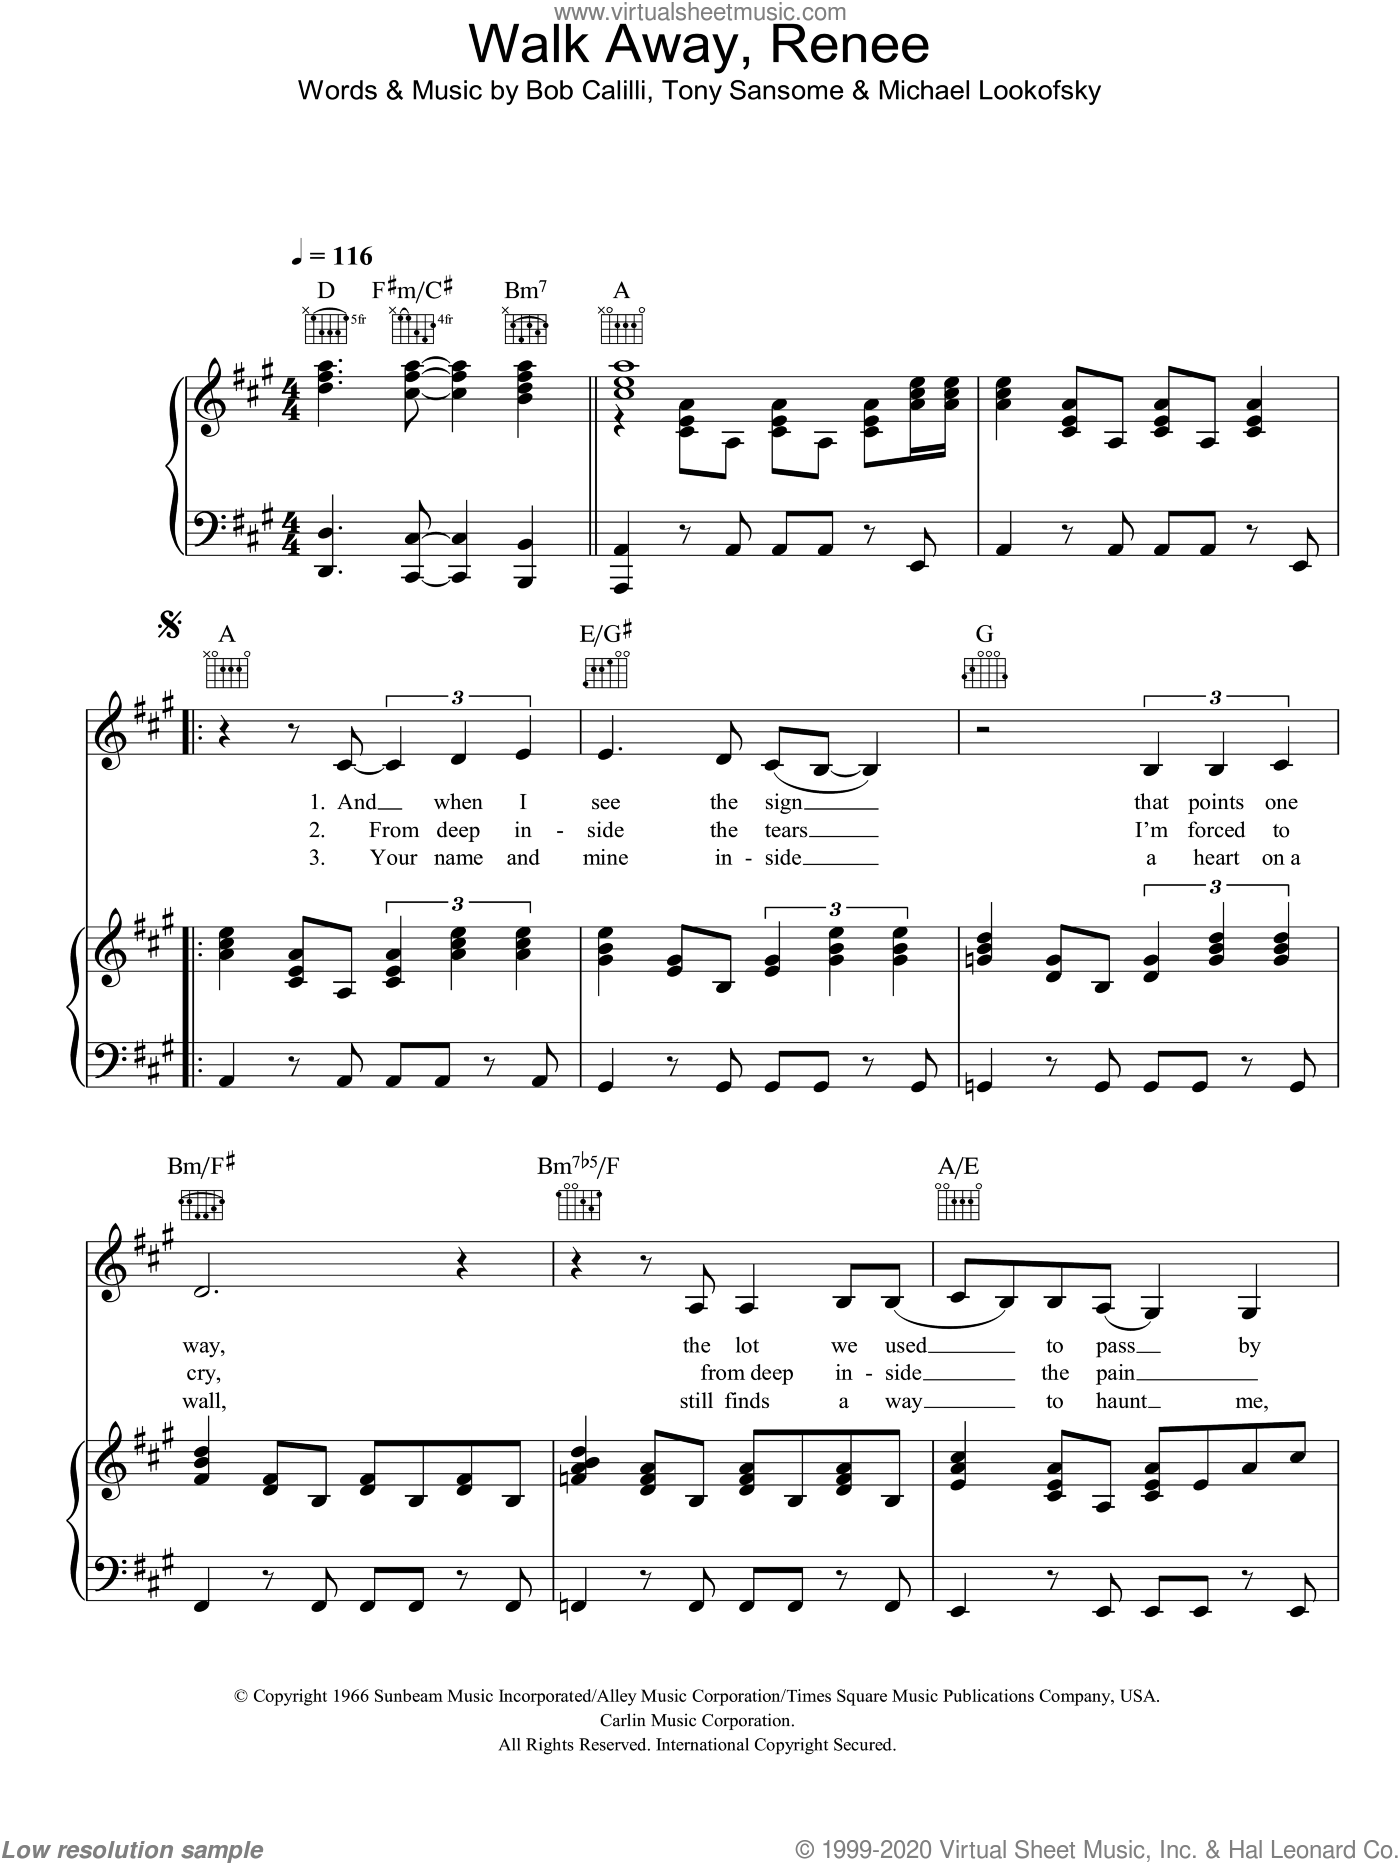 Walk Away, Renee sheet music for voice, piano or guitar by The Four Tops, Bob Calilli, Michael Lookofsky and Tony Sansome, intermediate. Score Image Preview.